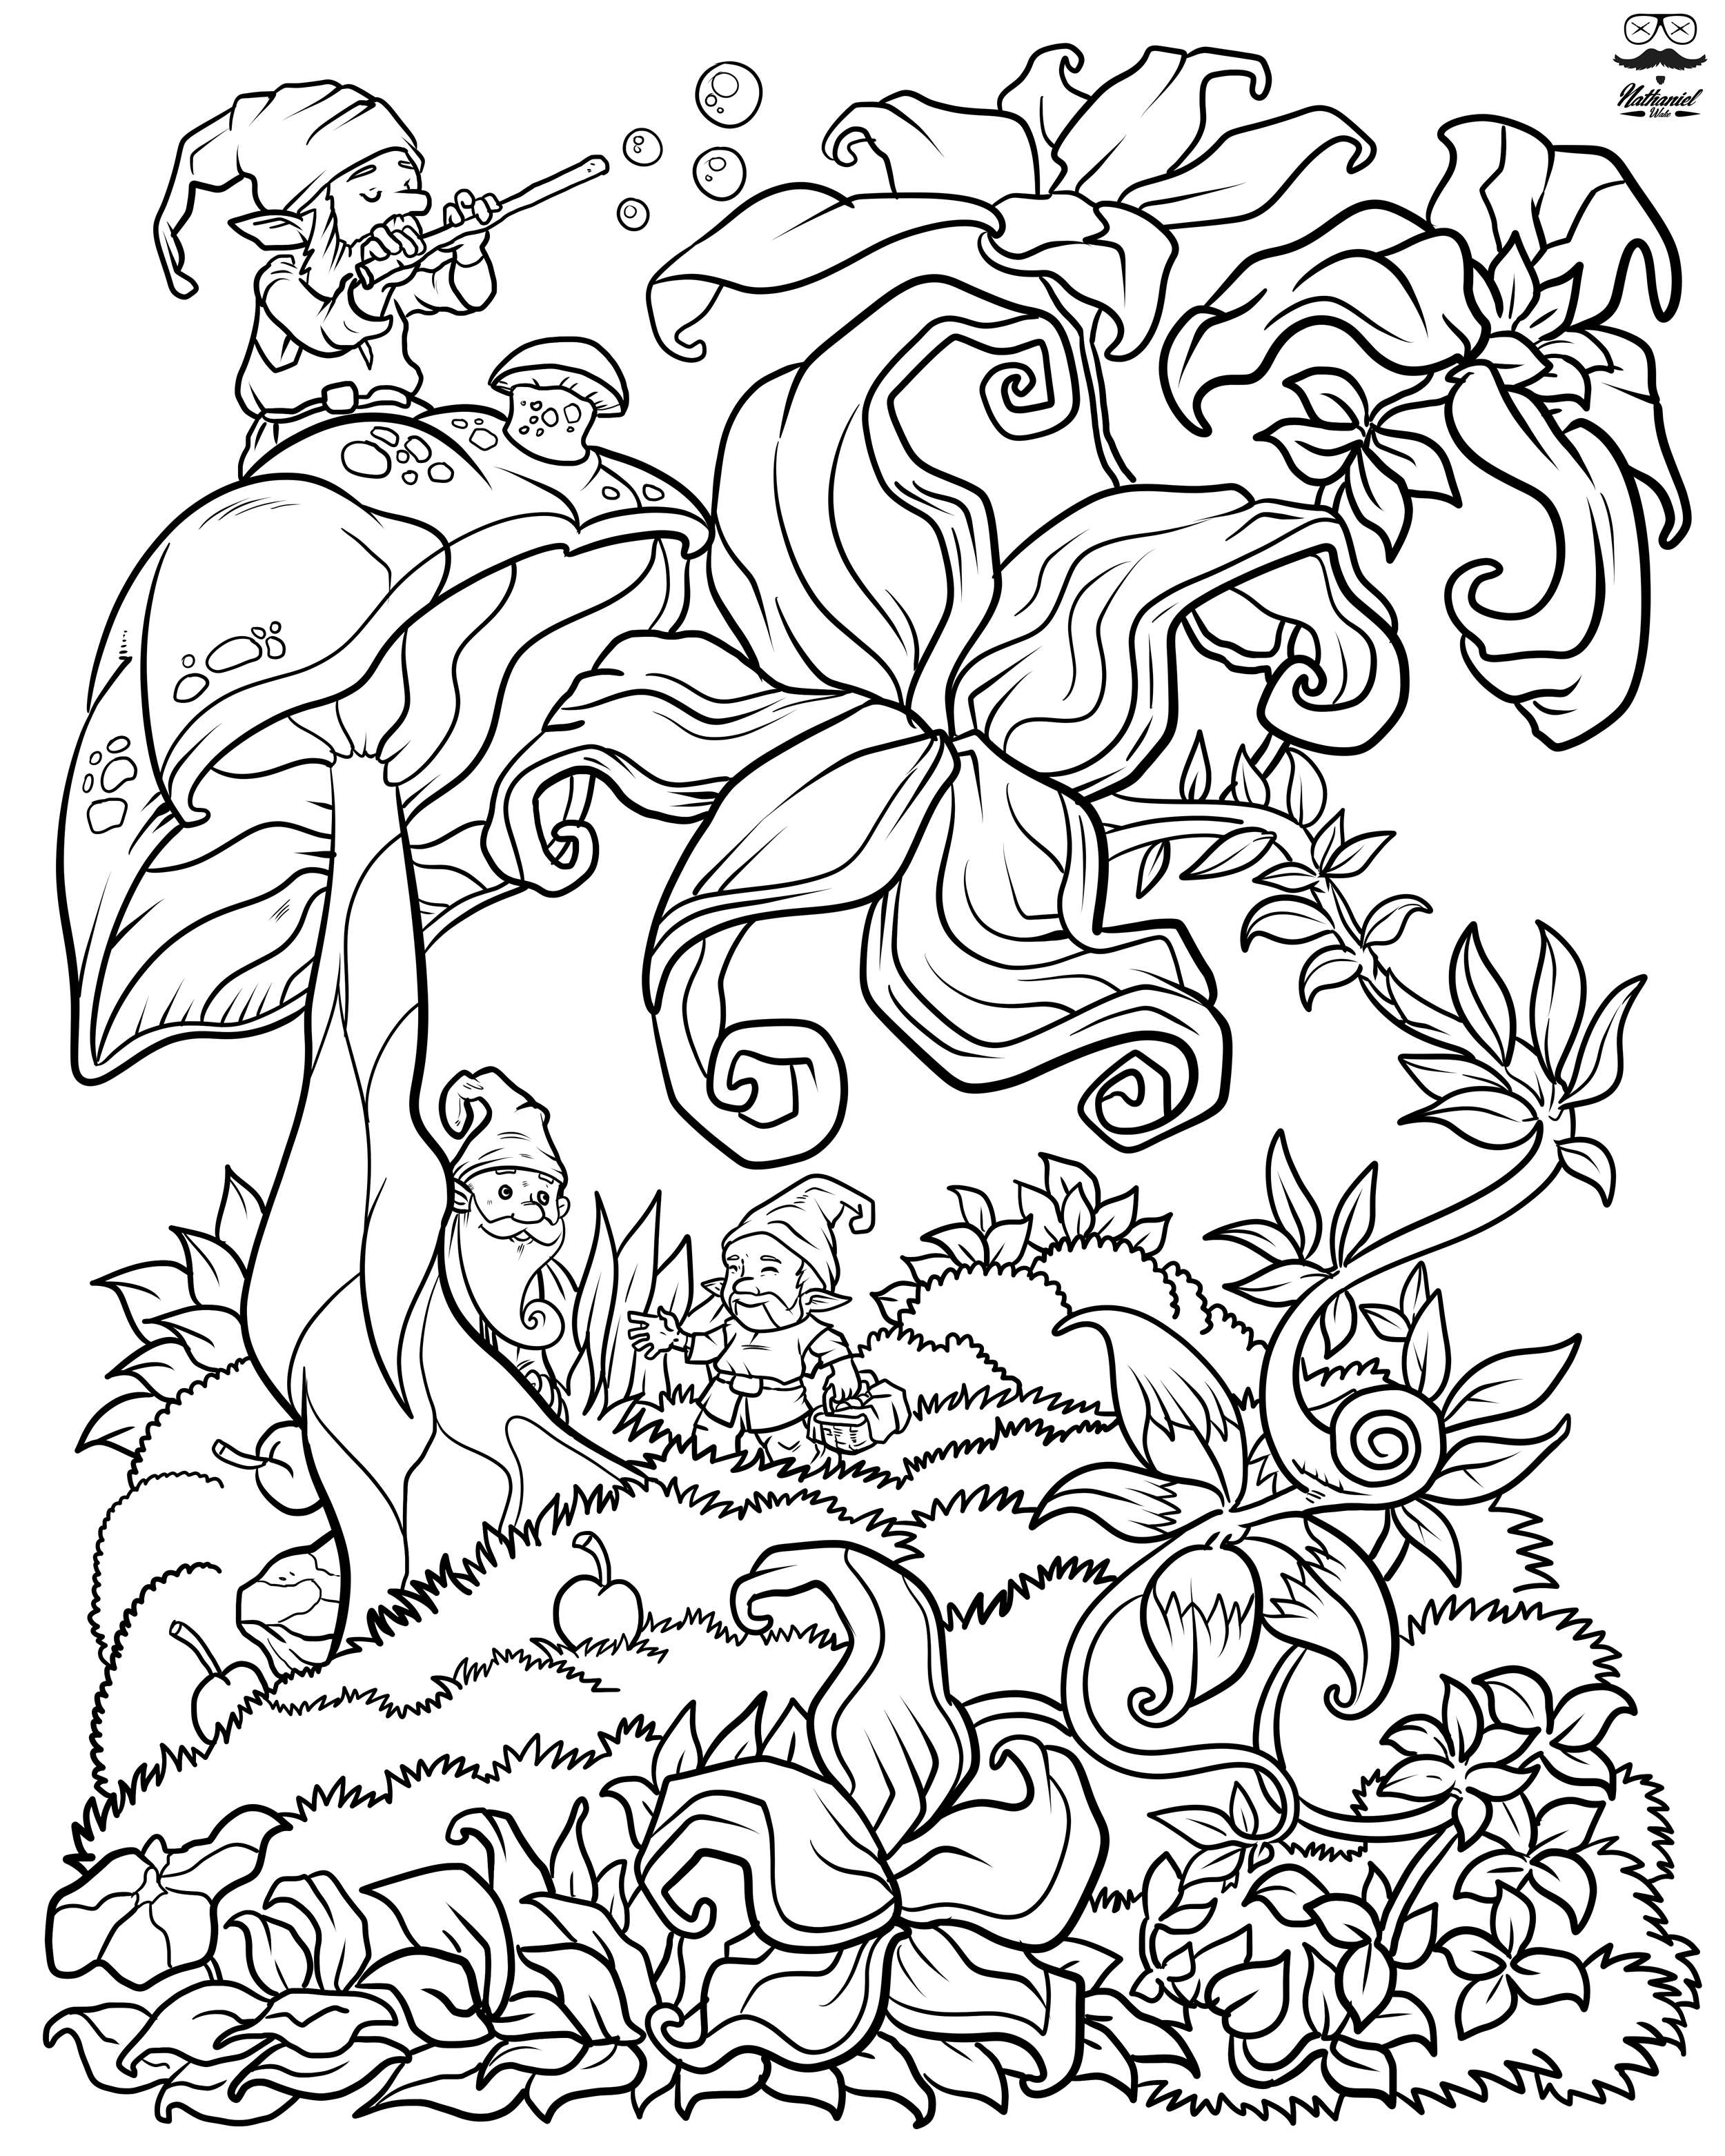 coloring book for adults tokopedia floral fantasy digital version adult coloring book tokopedia coloring for book adults